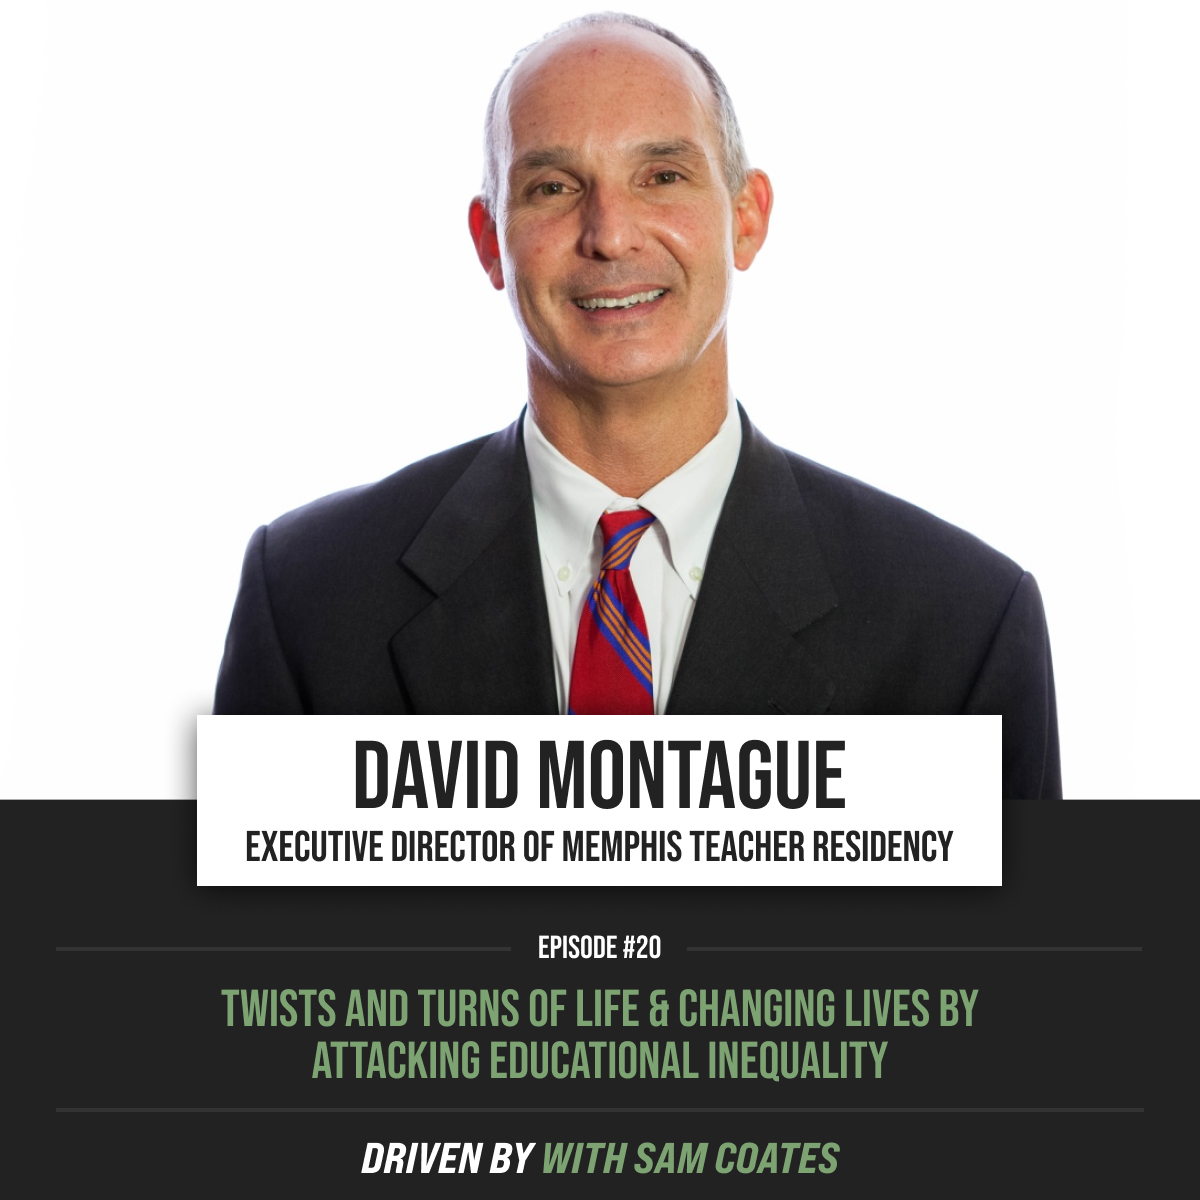 Twists and Turns of Life & Changing Lives by Attacking Educational Inequality with David Montague